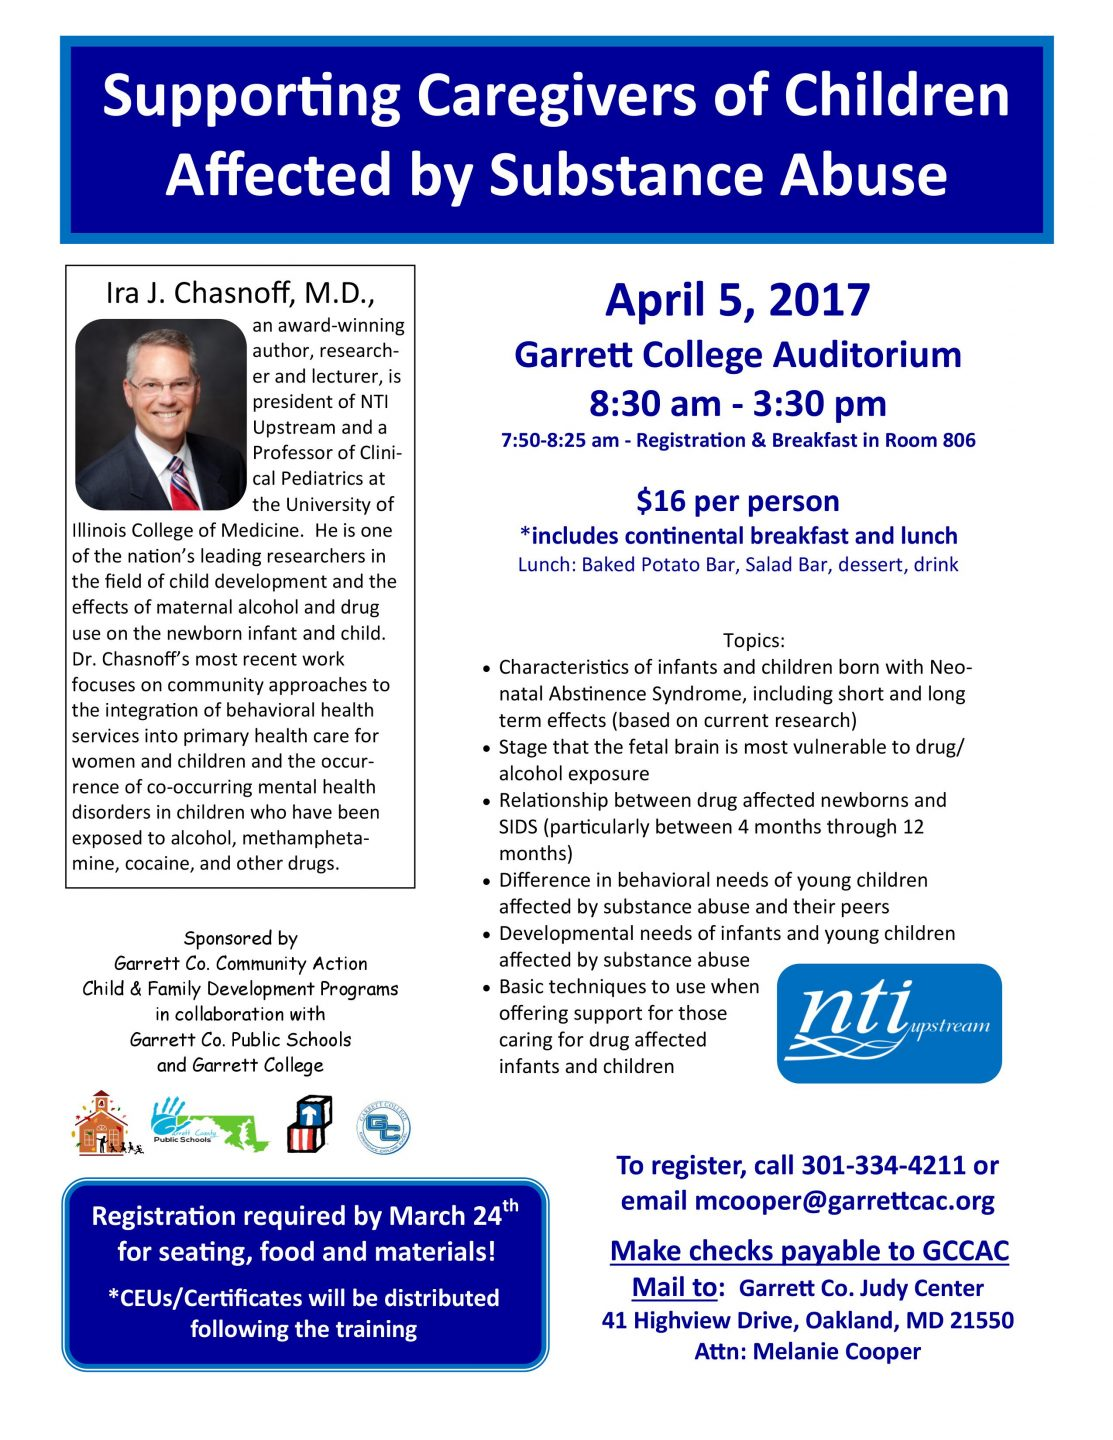 Supporting Caregivers of Children Affected by Substance Abuse